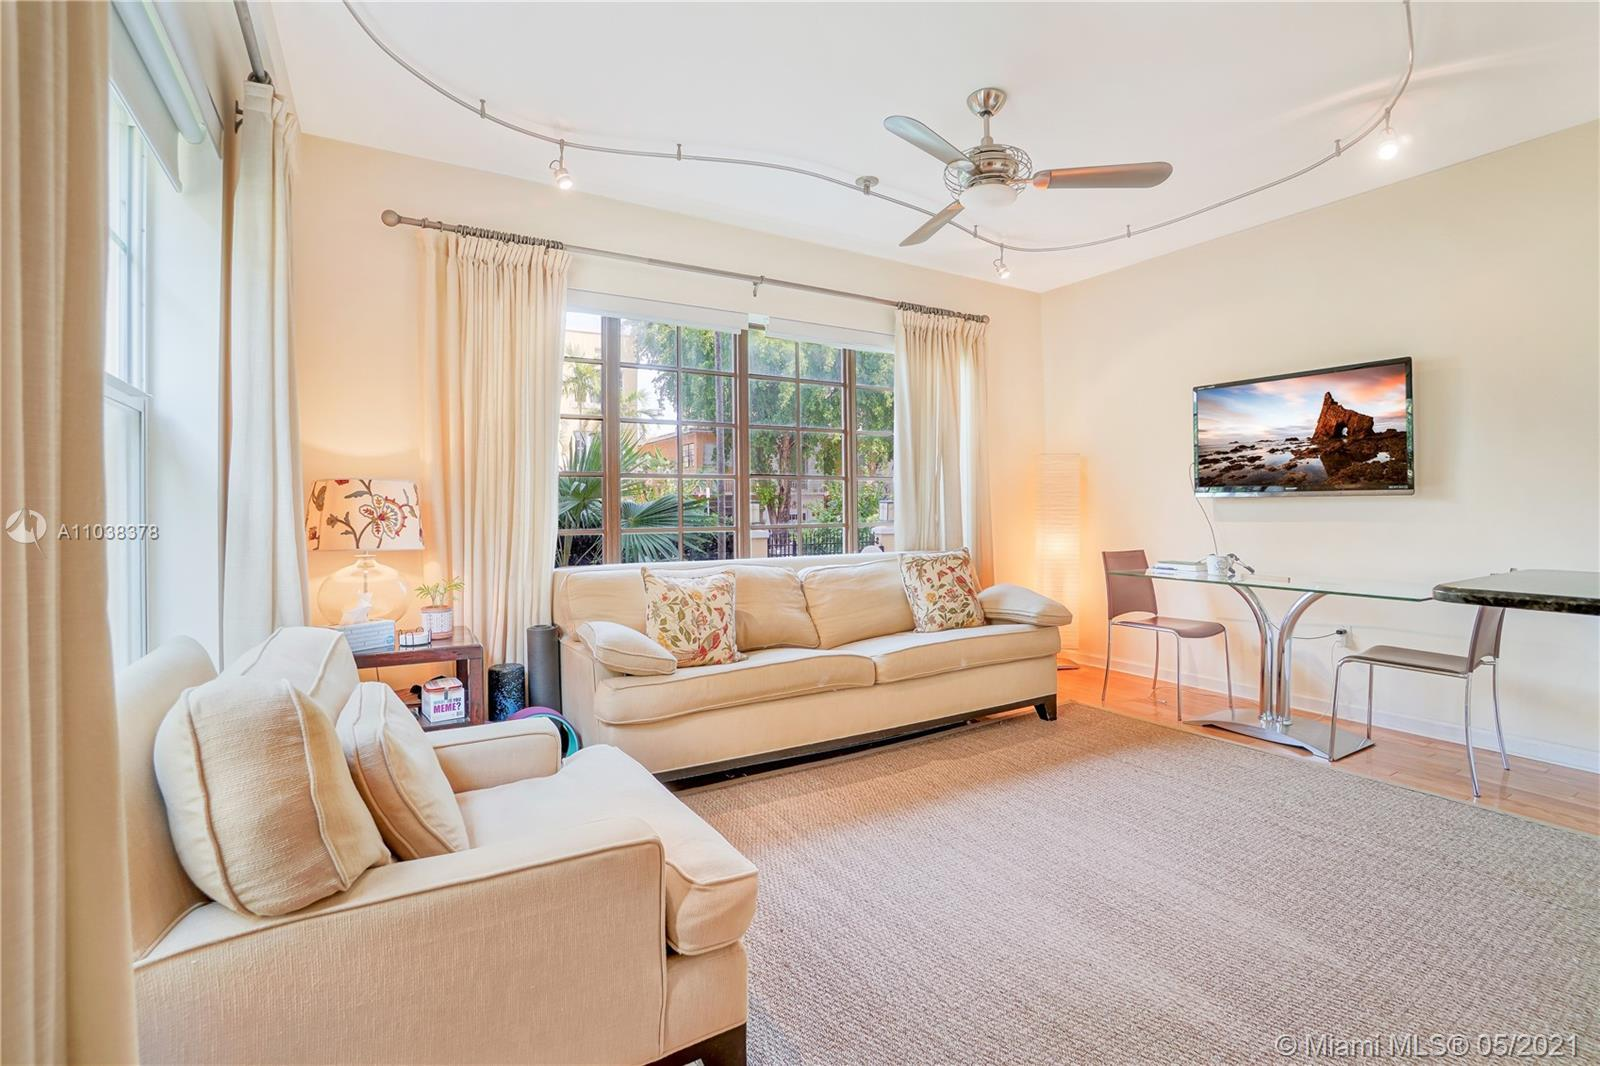 Welcome to the Lincoln Condo a Charming and Updated Fully Furnished One bedroom One bathroom steps f